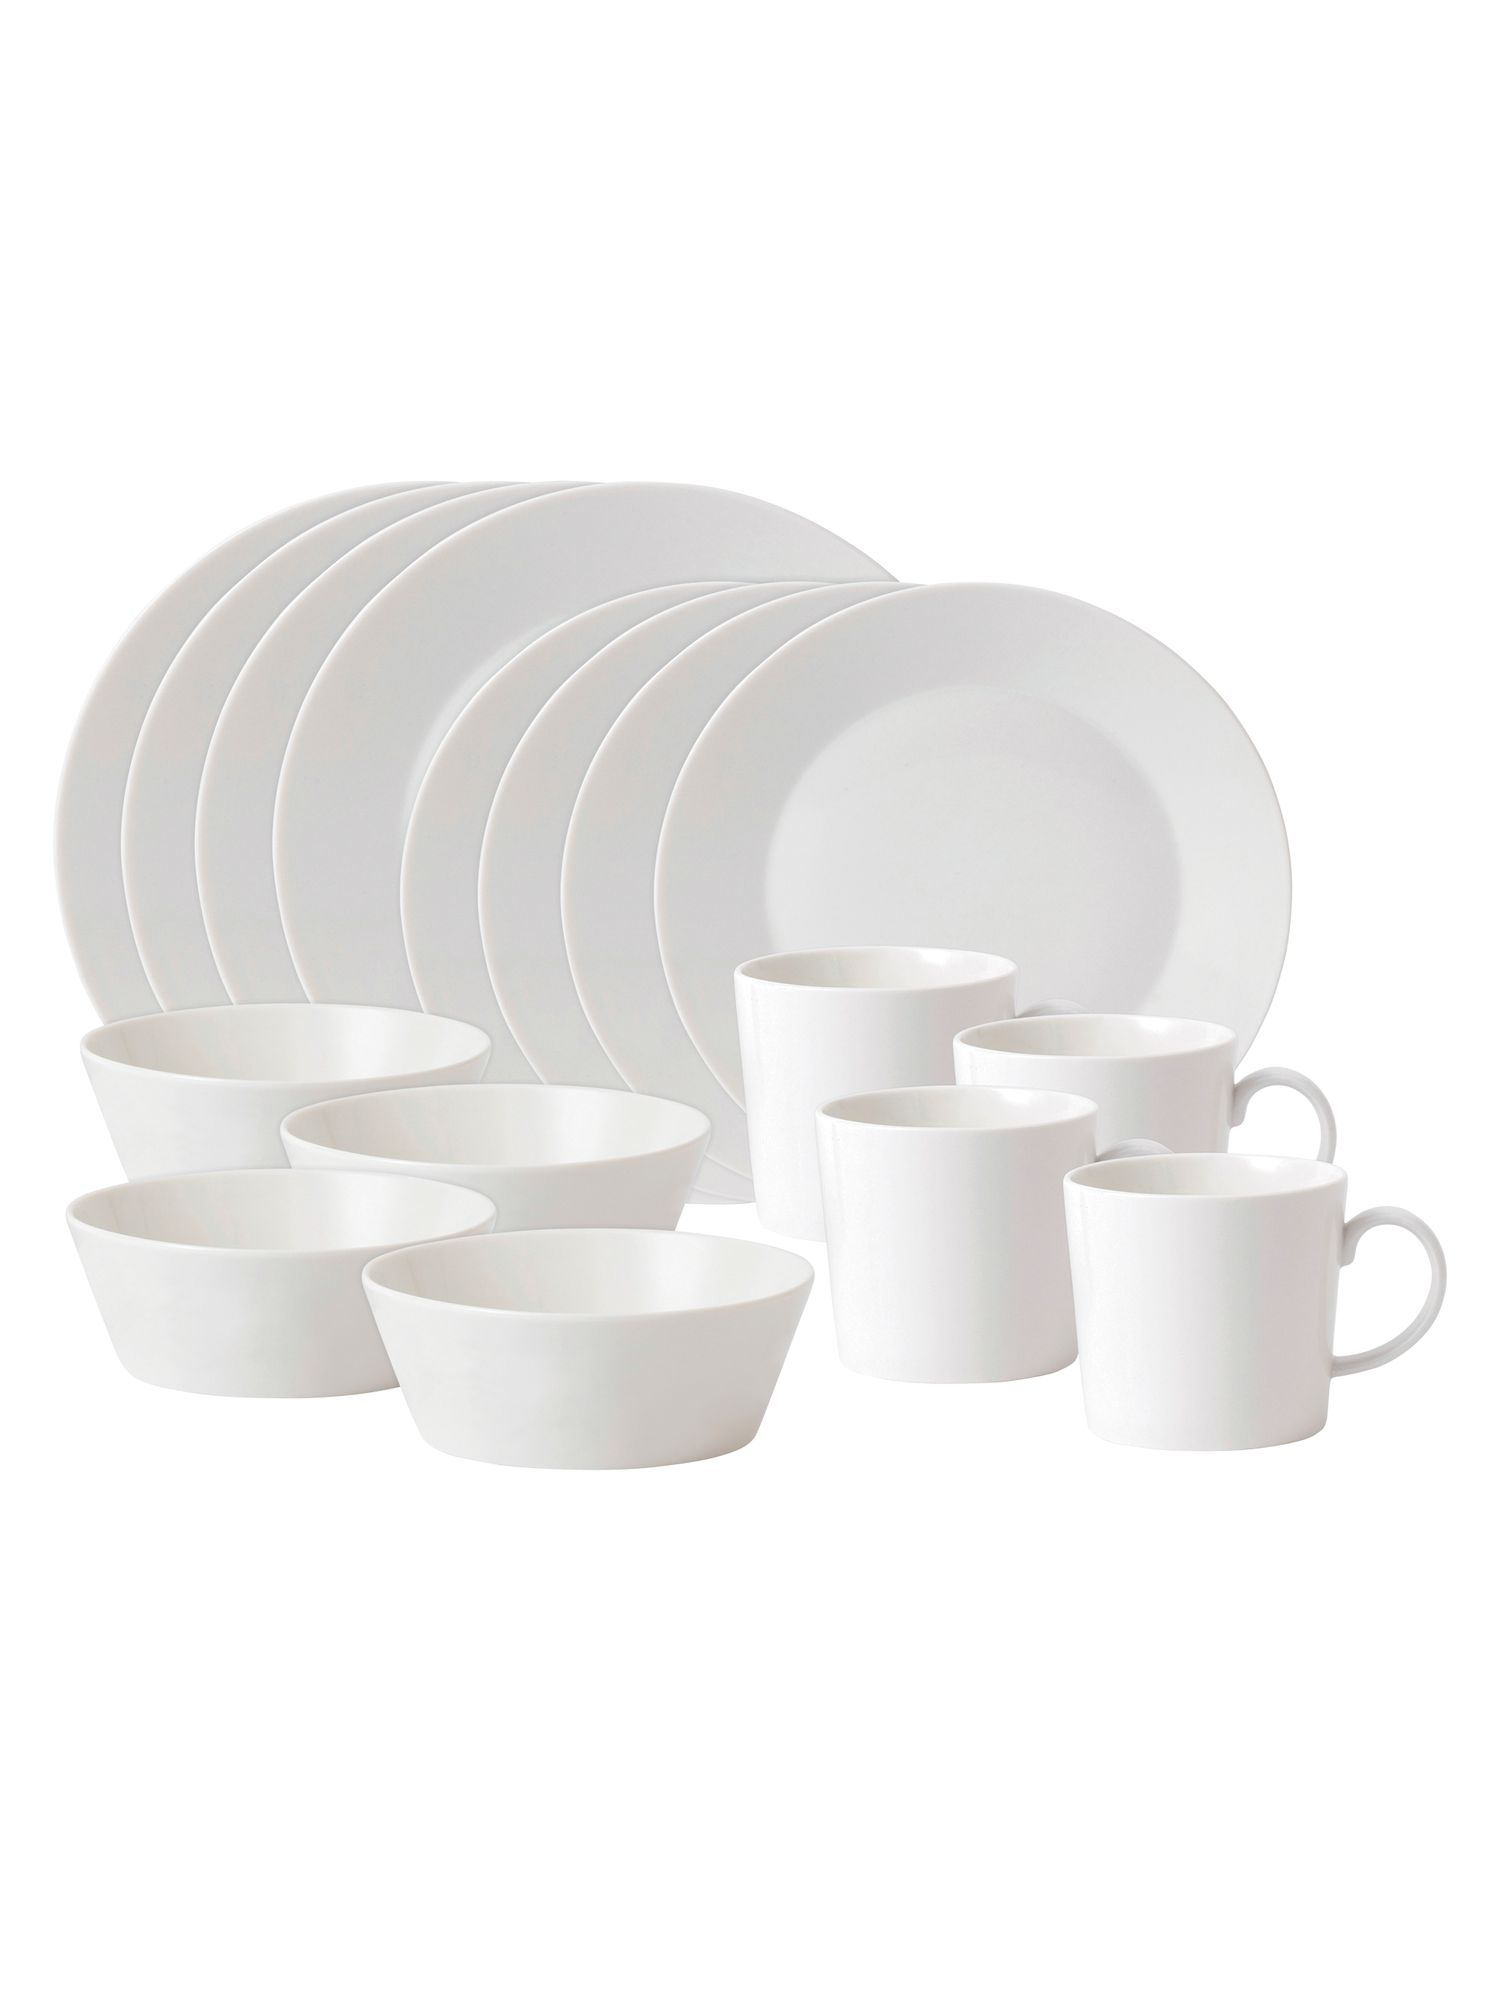 Fable white 16 piece set